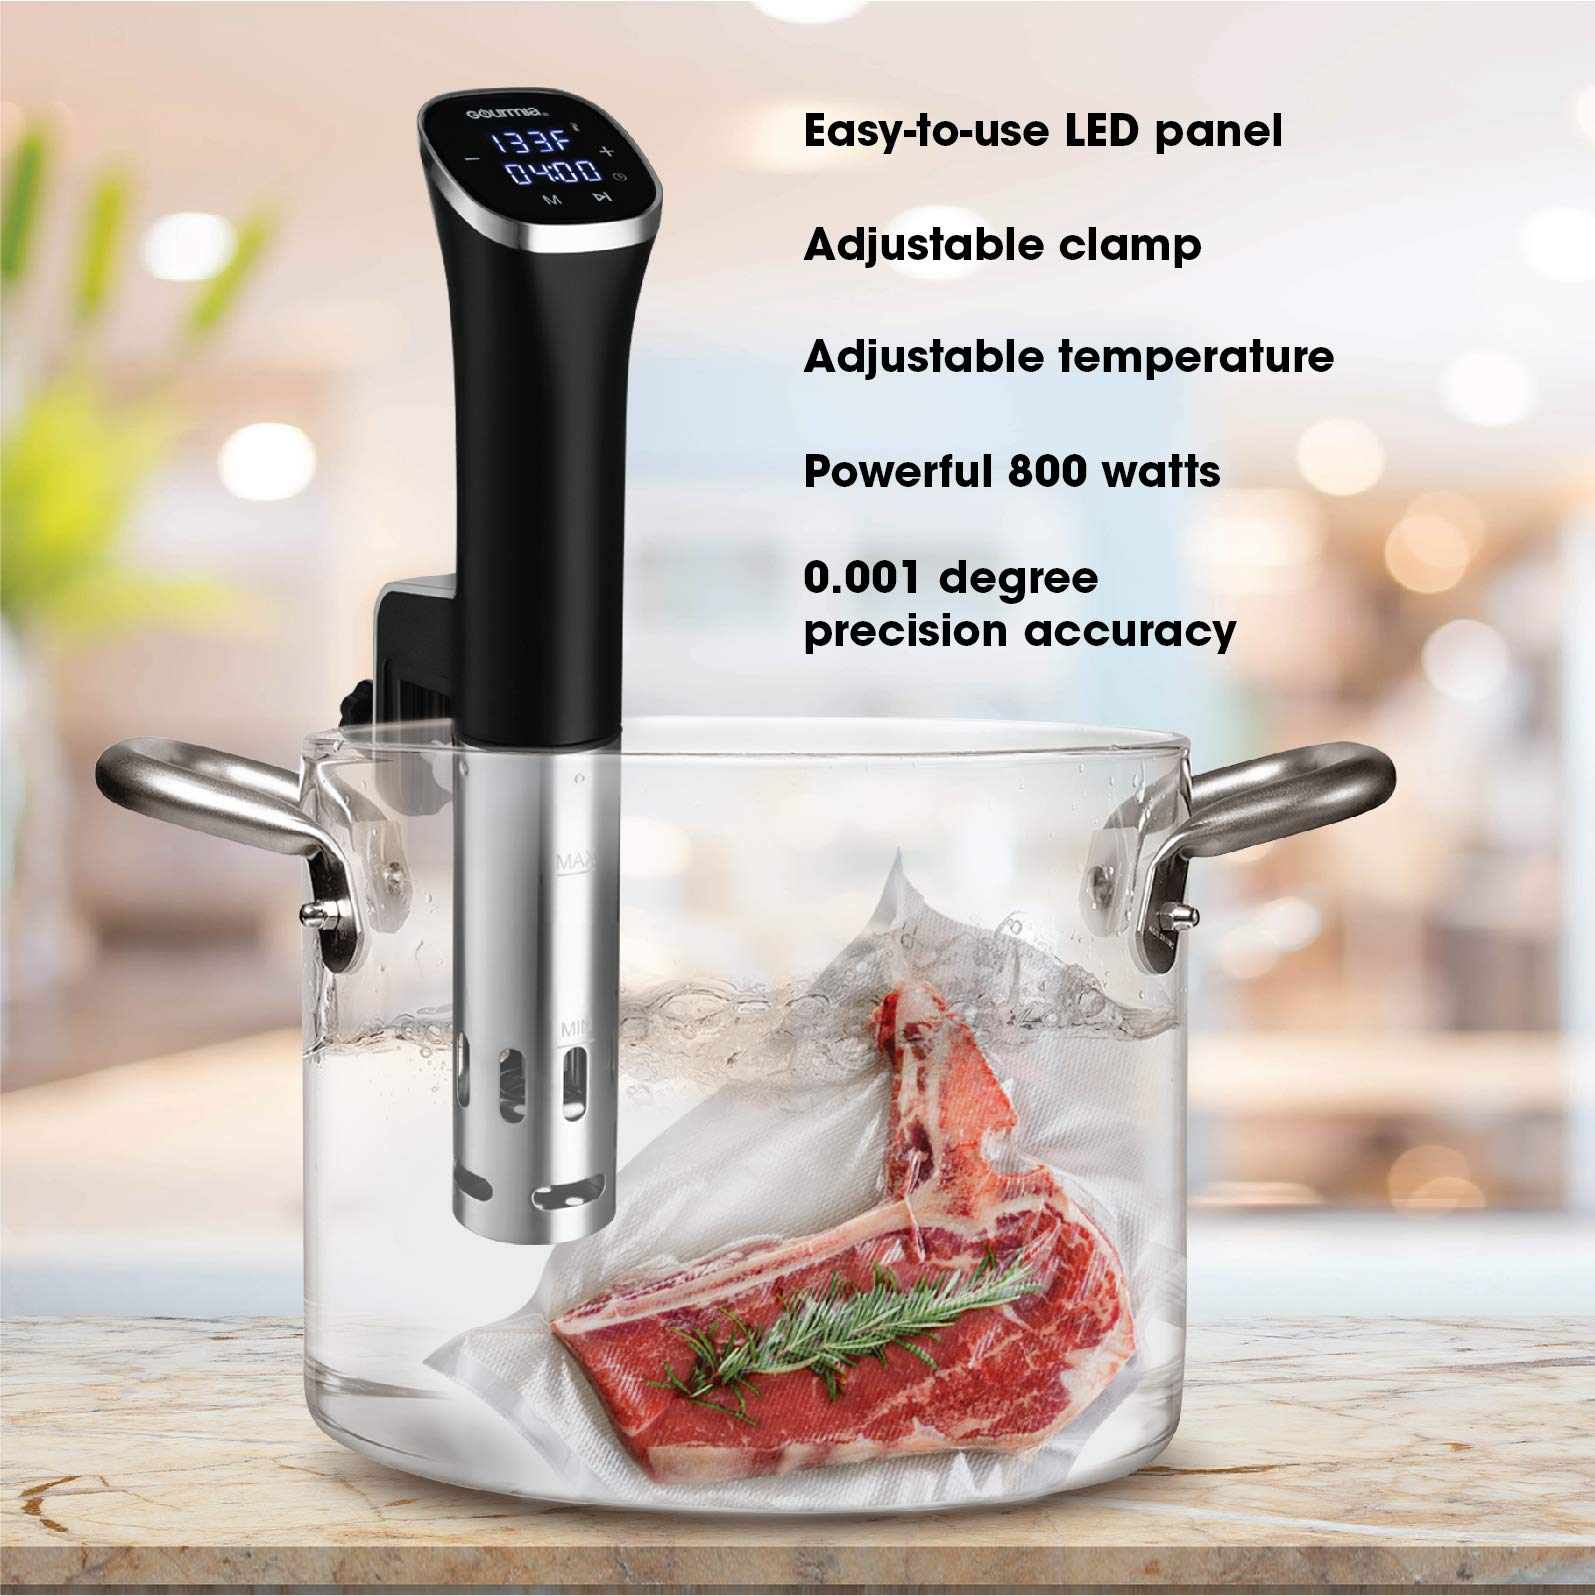 Gourmia GSV115 - Immersion Compact Sous Vide Pod with LED Display - Digital Timer - Accurate Cooking - 800 Watts - Recipe Book Included by Gourmia (Image #2)